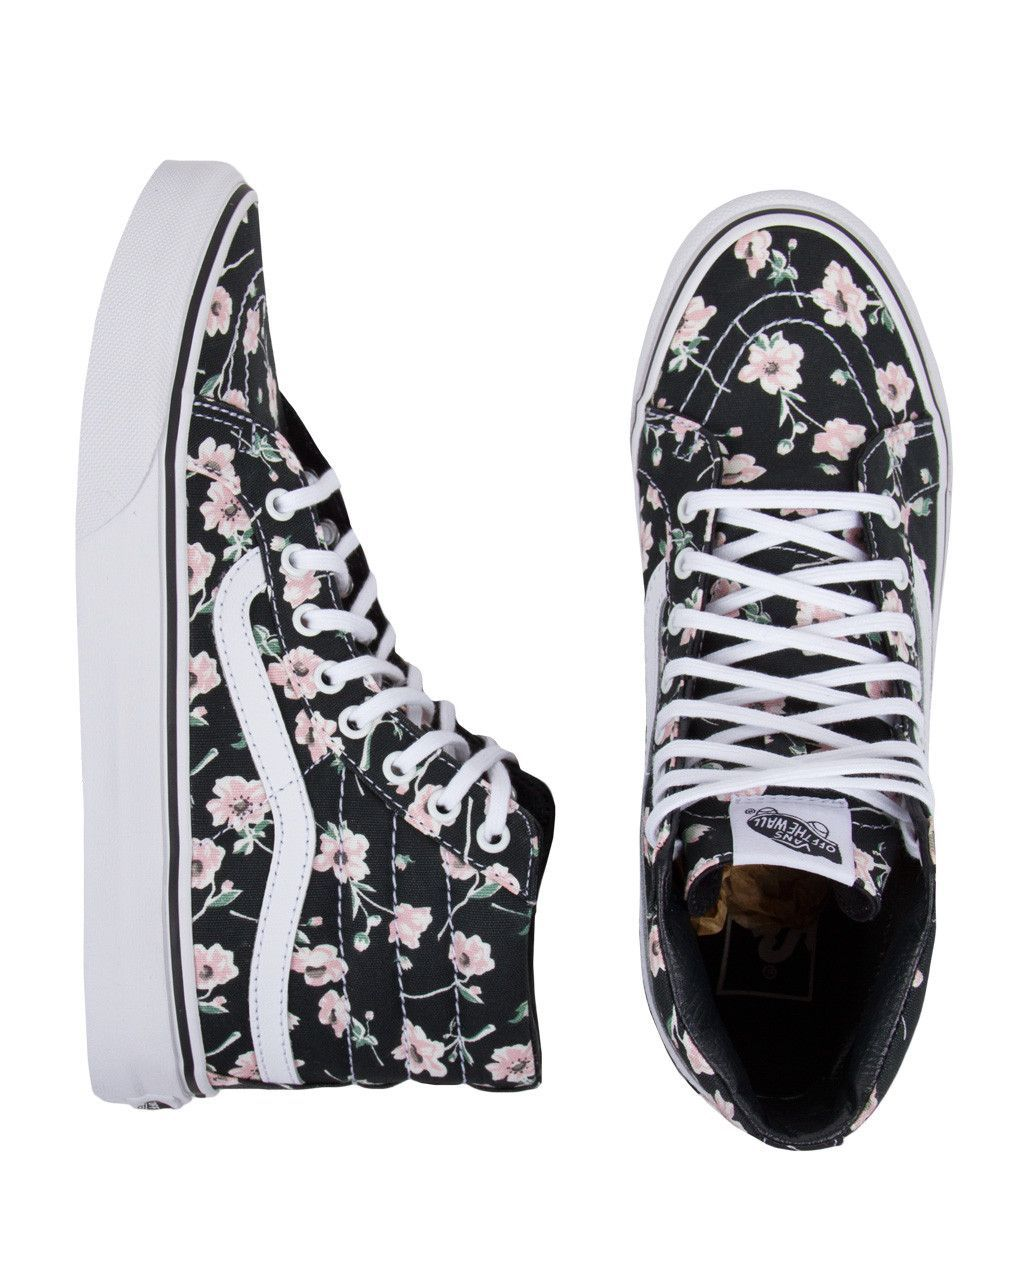 Vans Sk8 Hi Slim Vintage Floral Shoes Visit Www Thelafashion Com